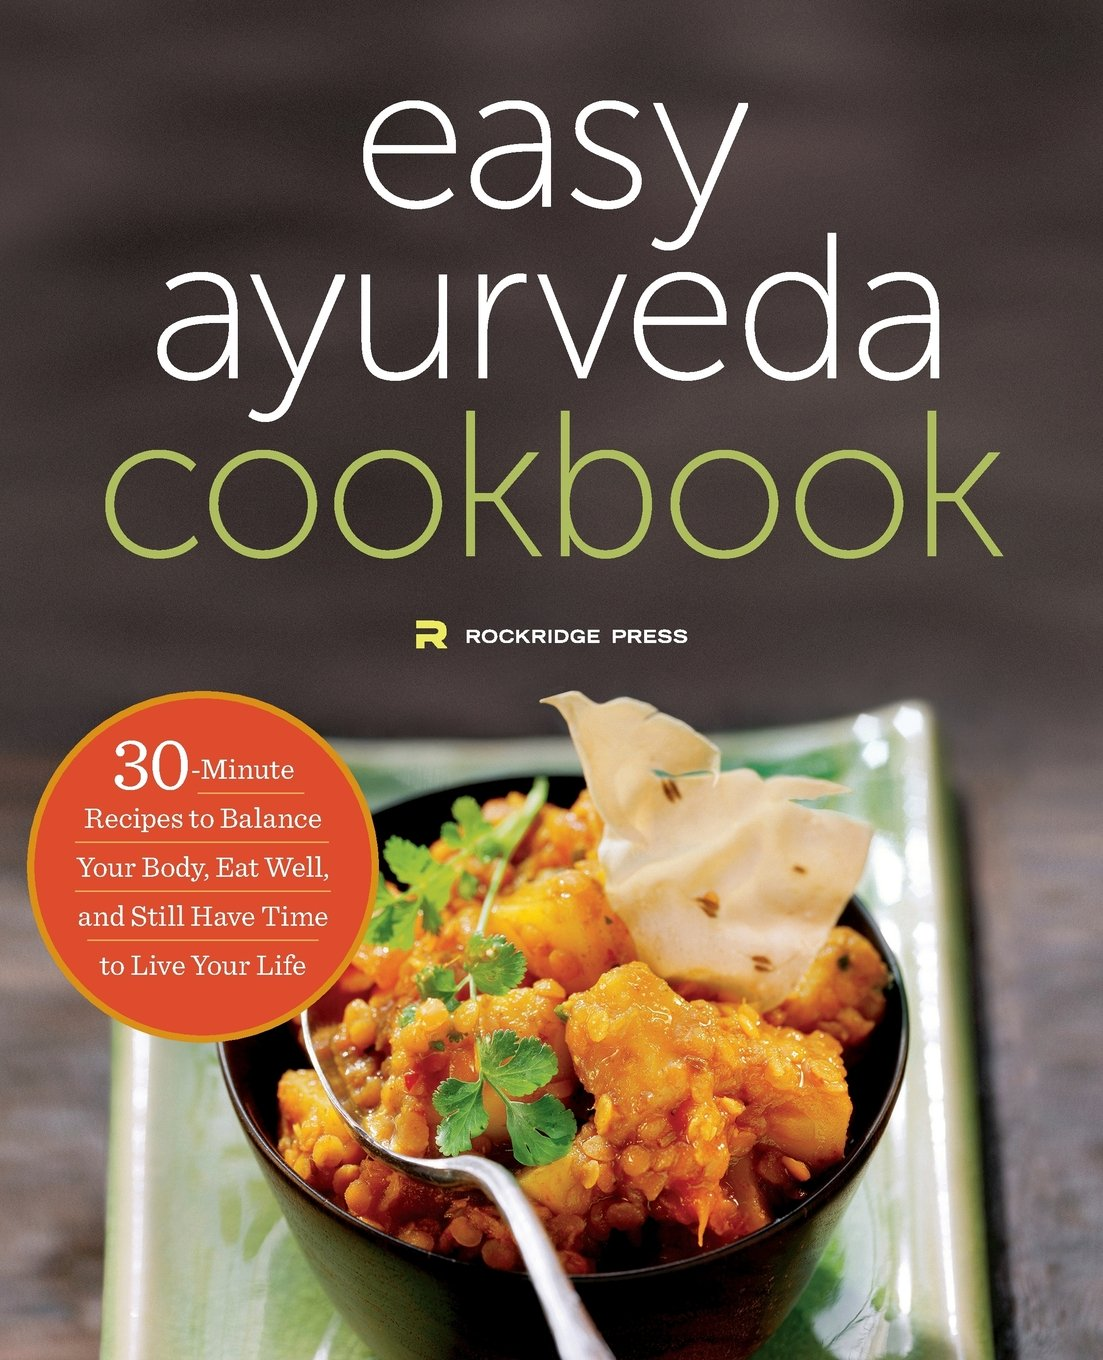 The Easy Ayurveda Cookbook: An Ayurvedic Cookbook to Balance Your